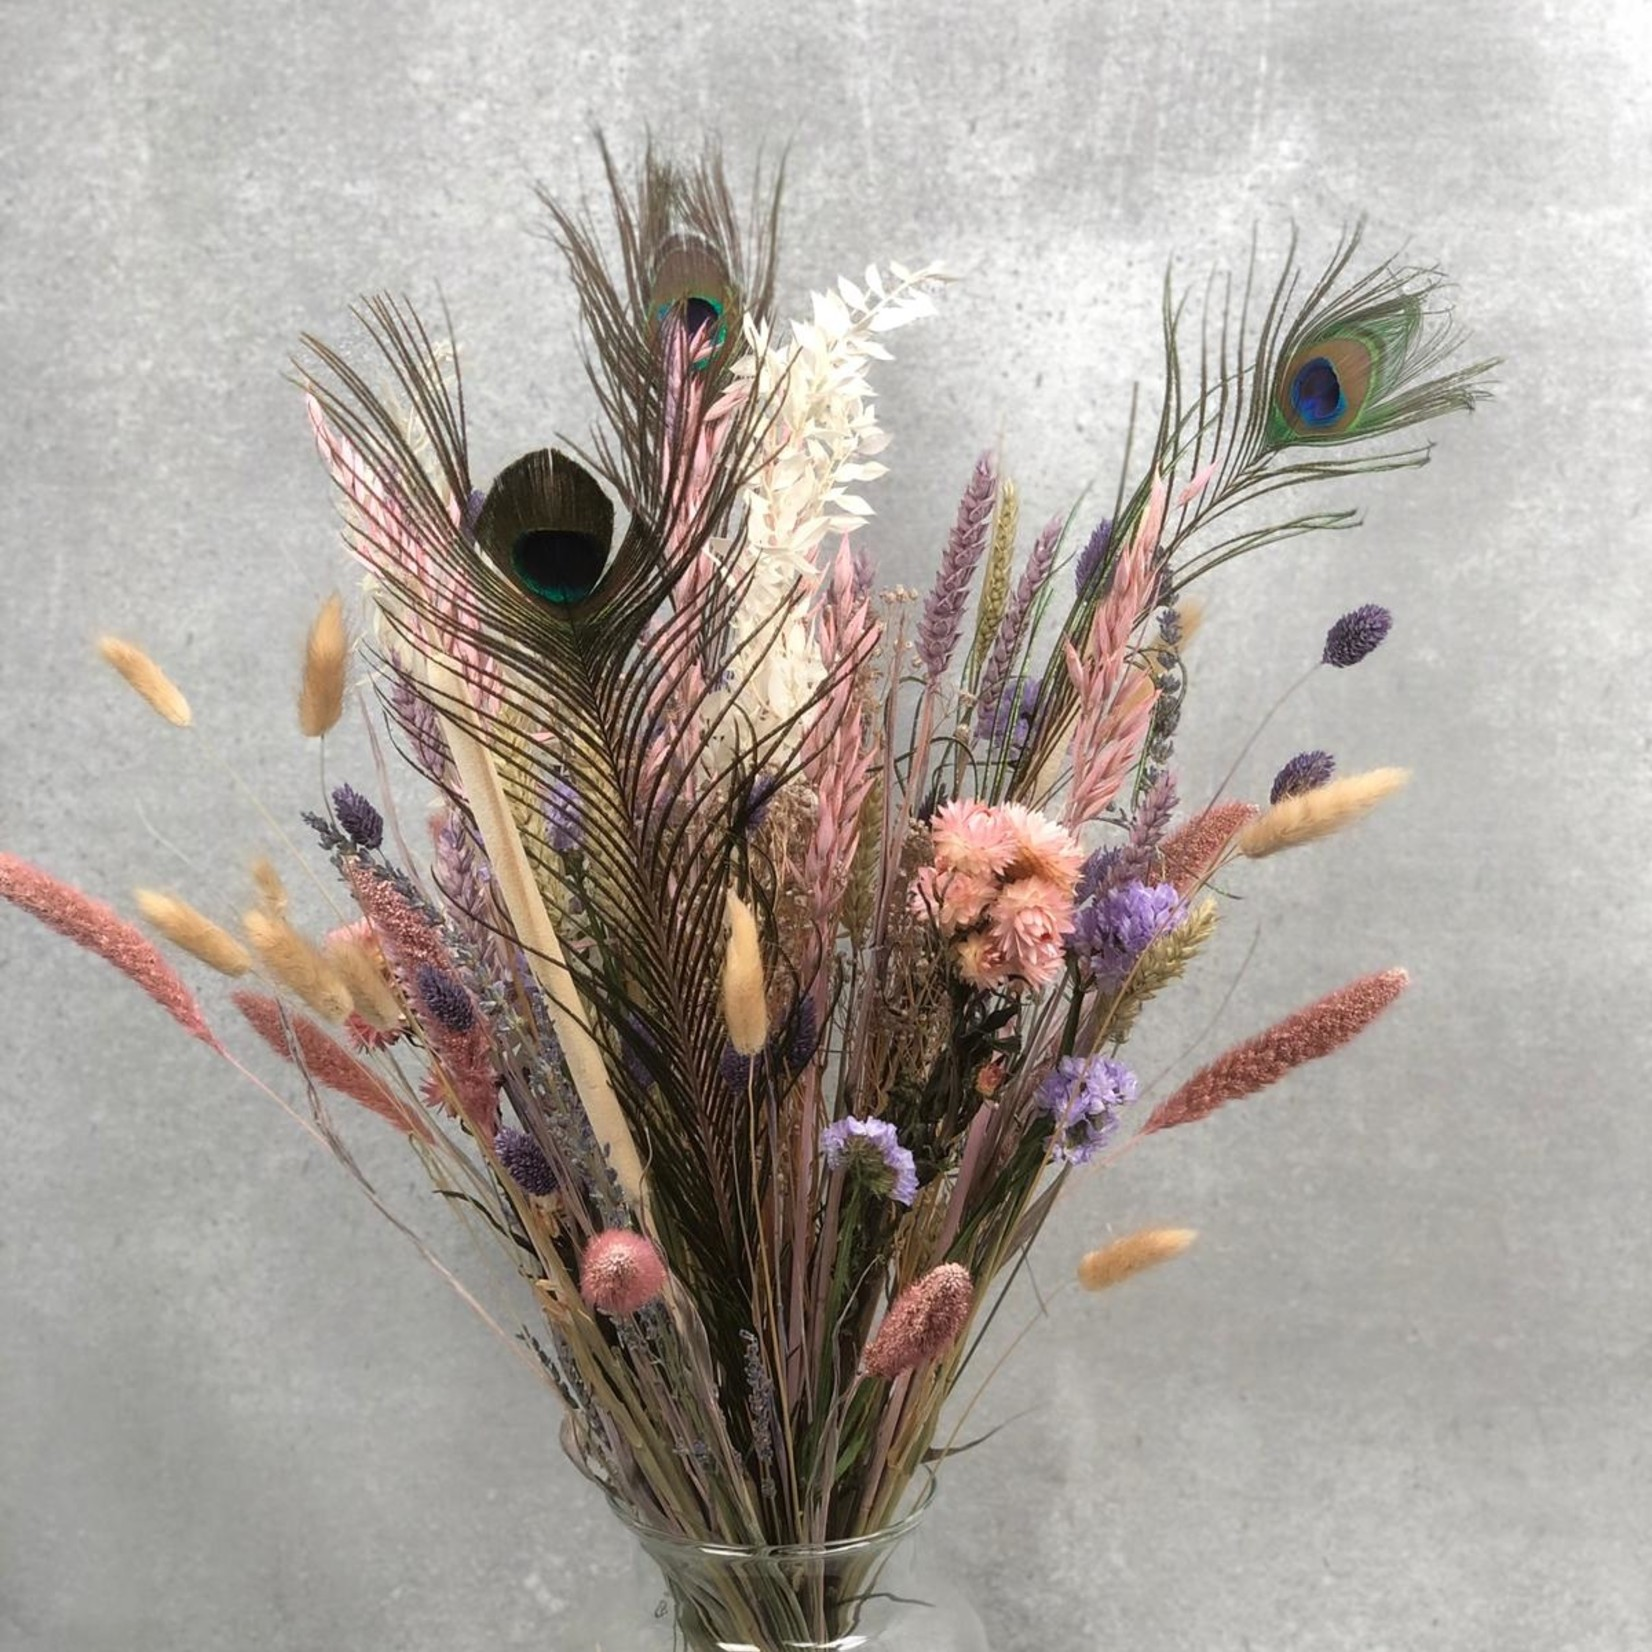 Bouquet of dried flowers Sara - pastel shades